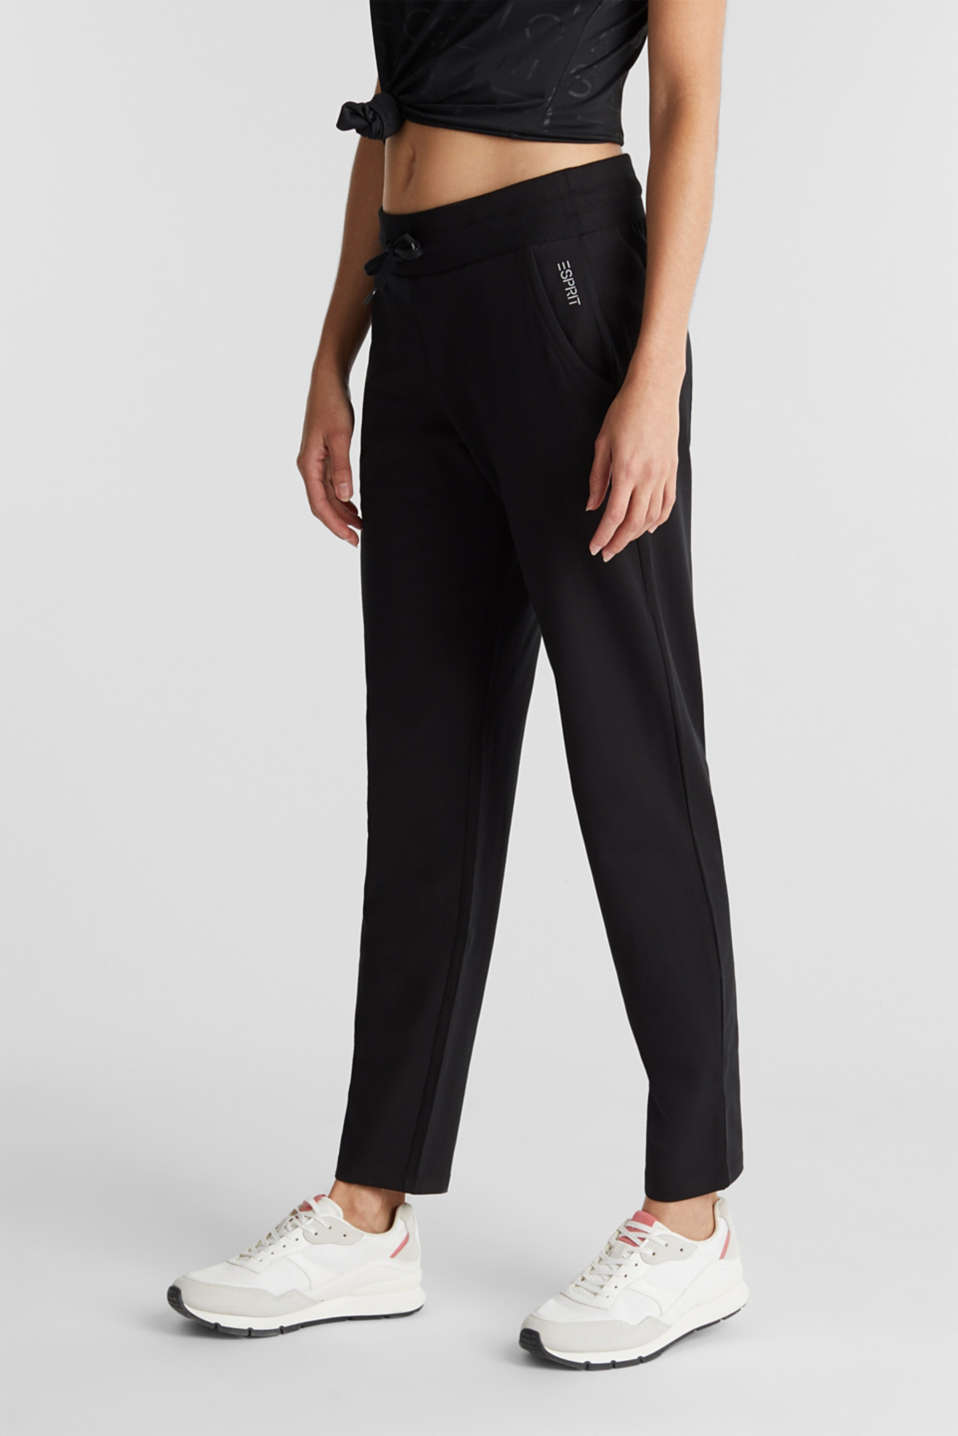 Esprit - Jersey trousers with a wide elasticated waistband